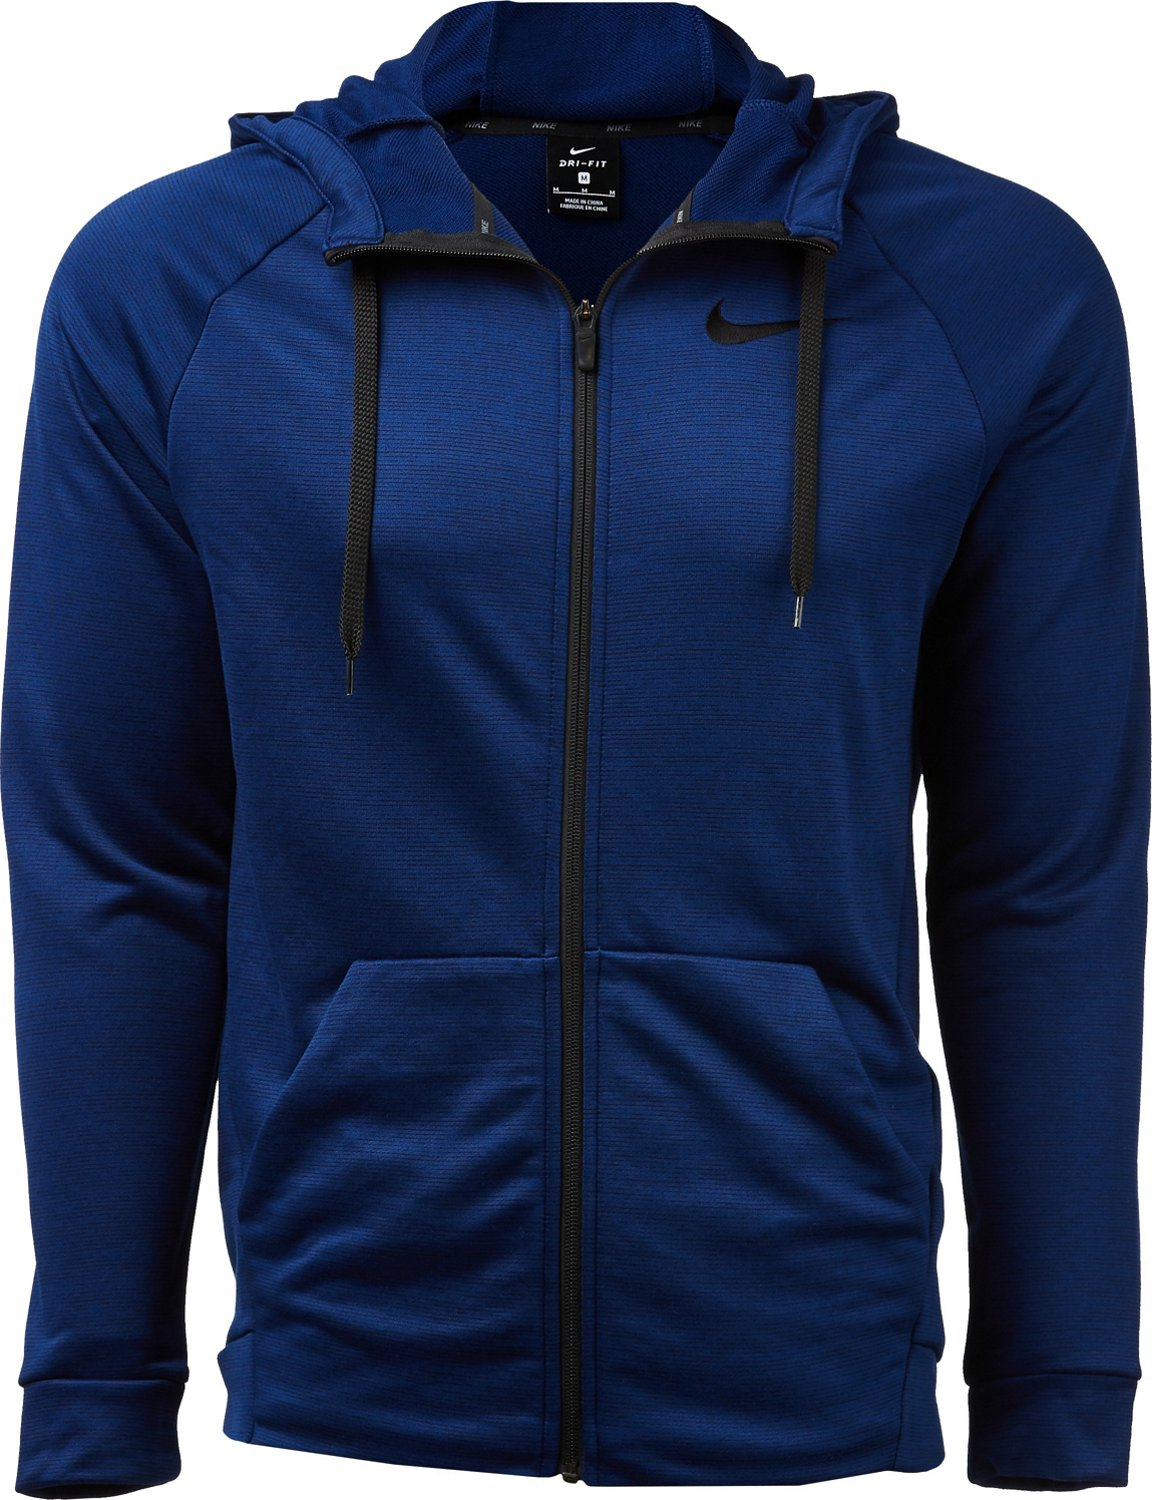 492119ea1ab30 Display product reviews for Nike Men s Dry Training Hoodie